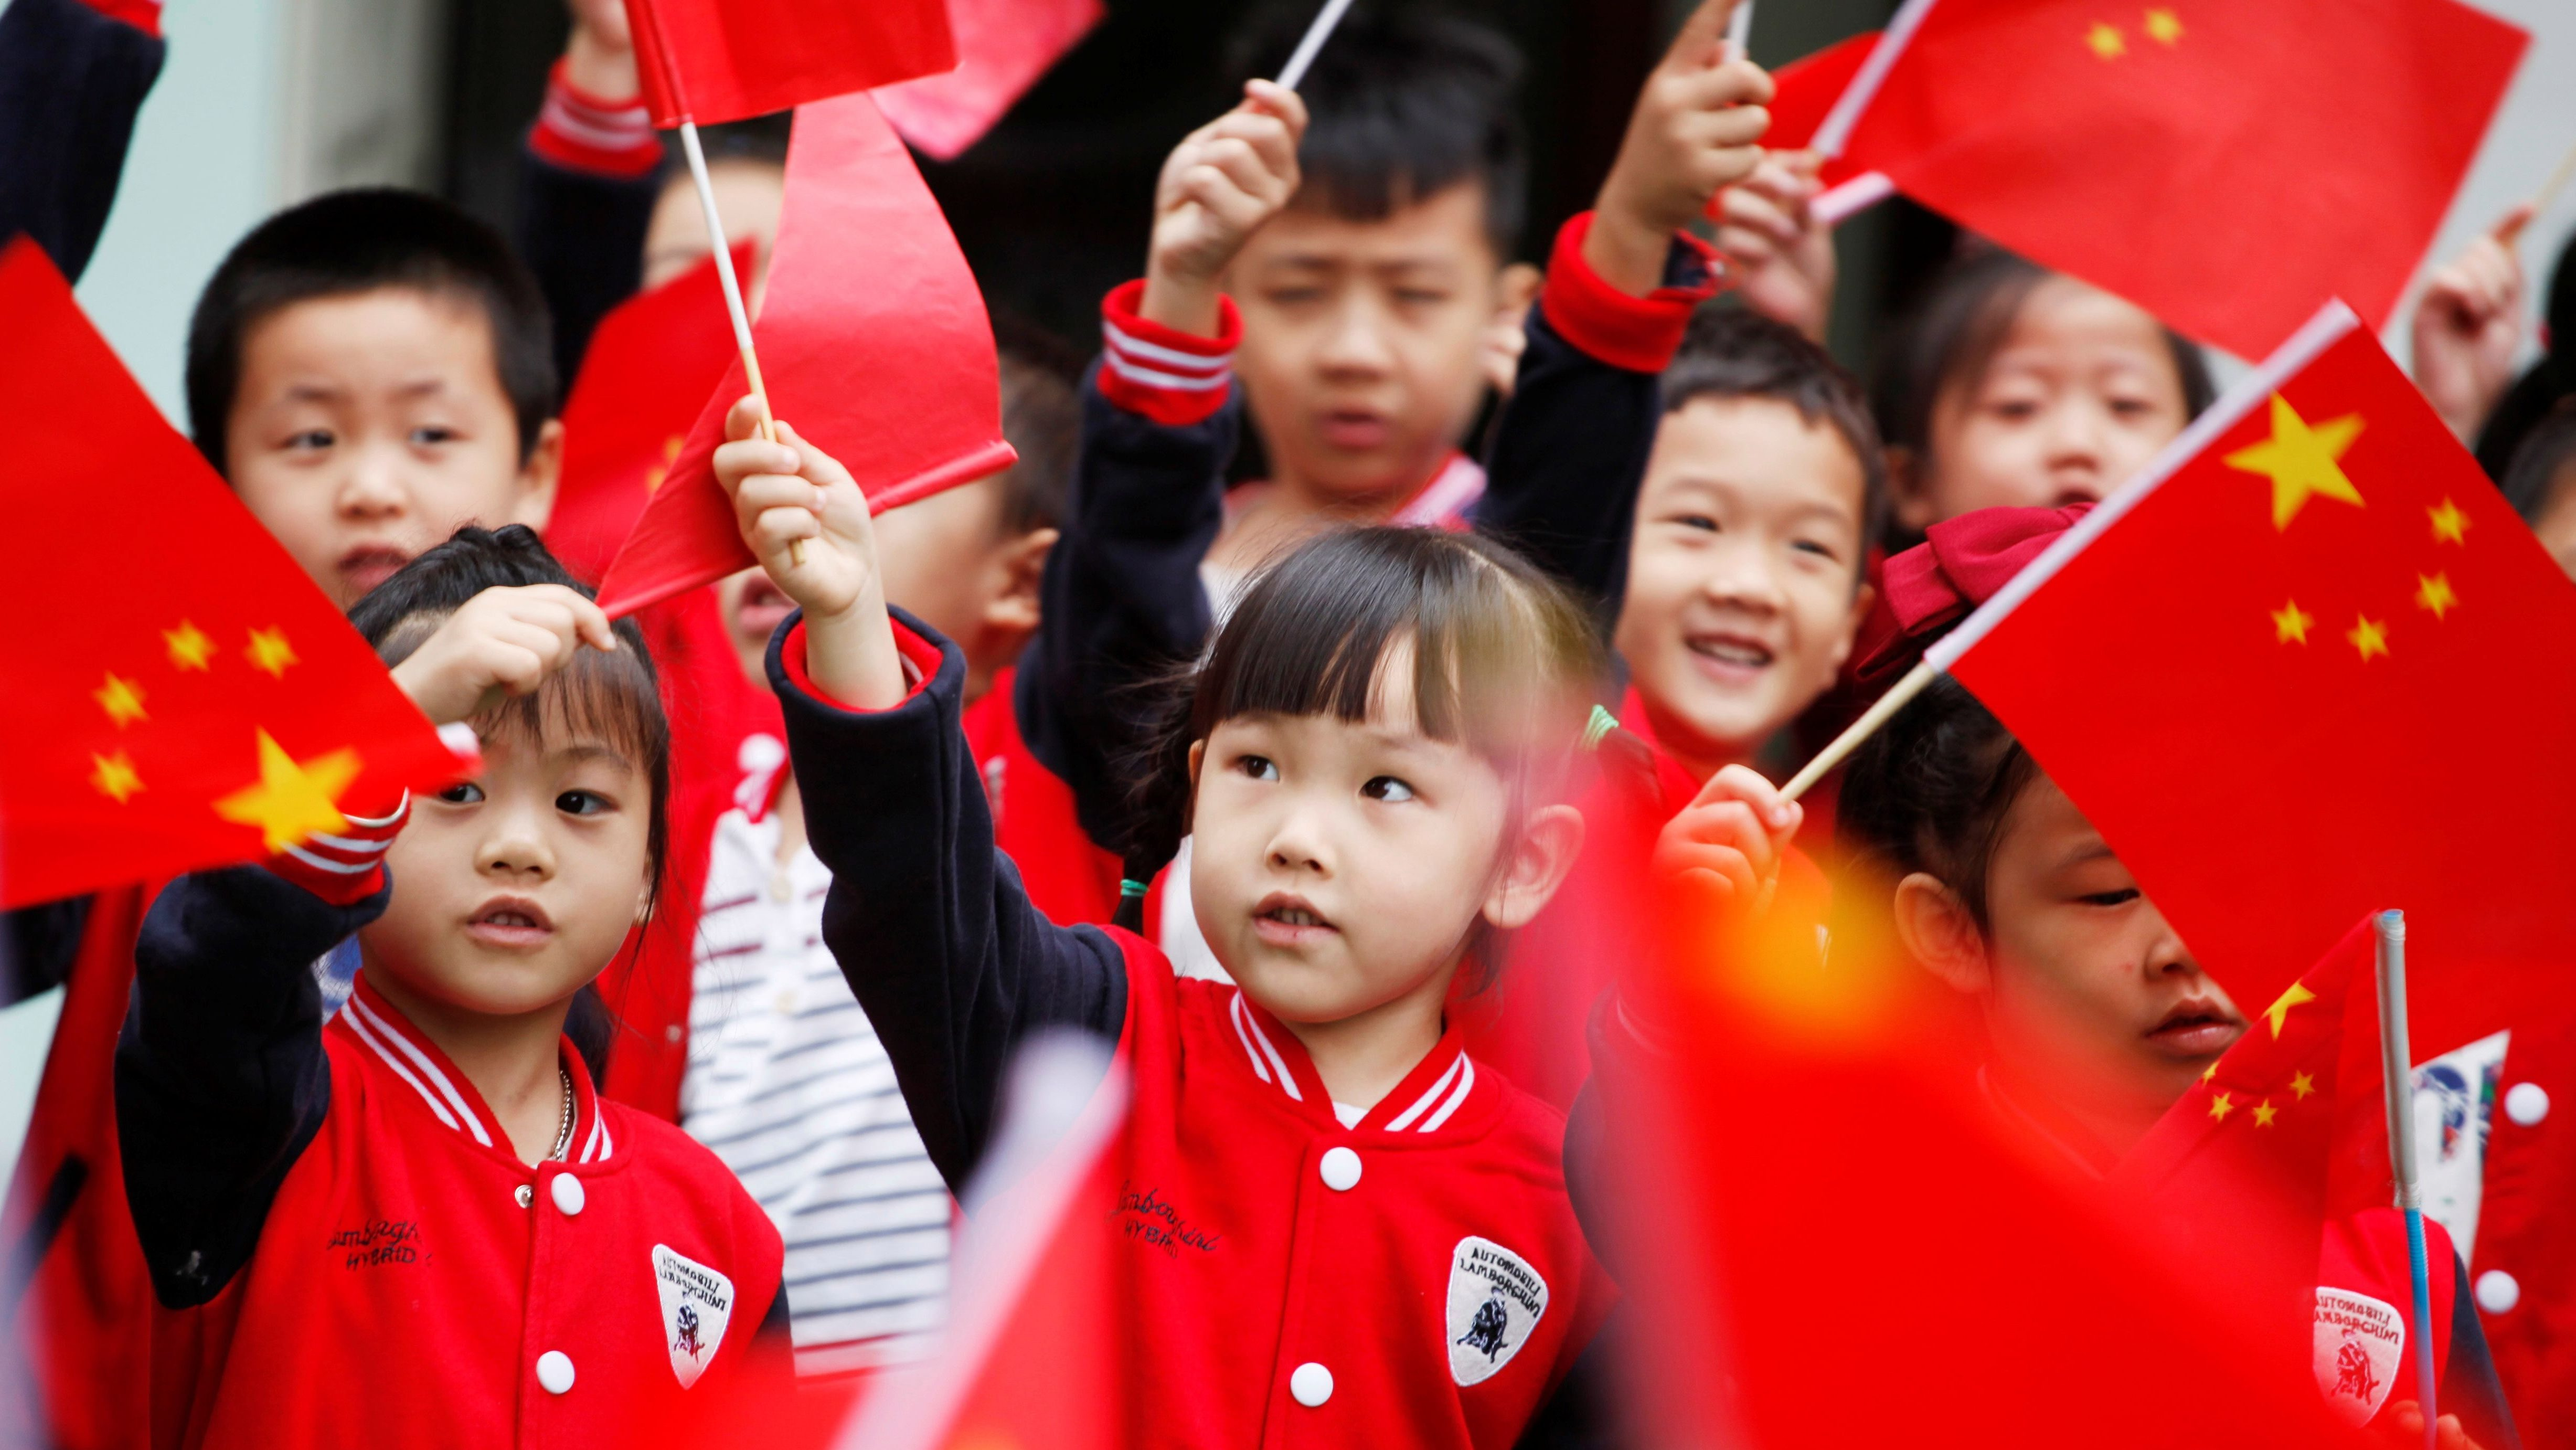 Chinese students need to learn Xi Jinping thought.